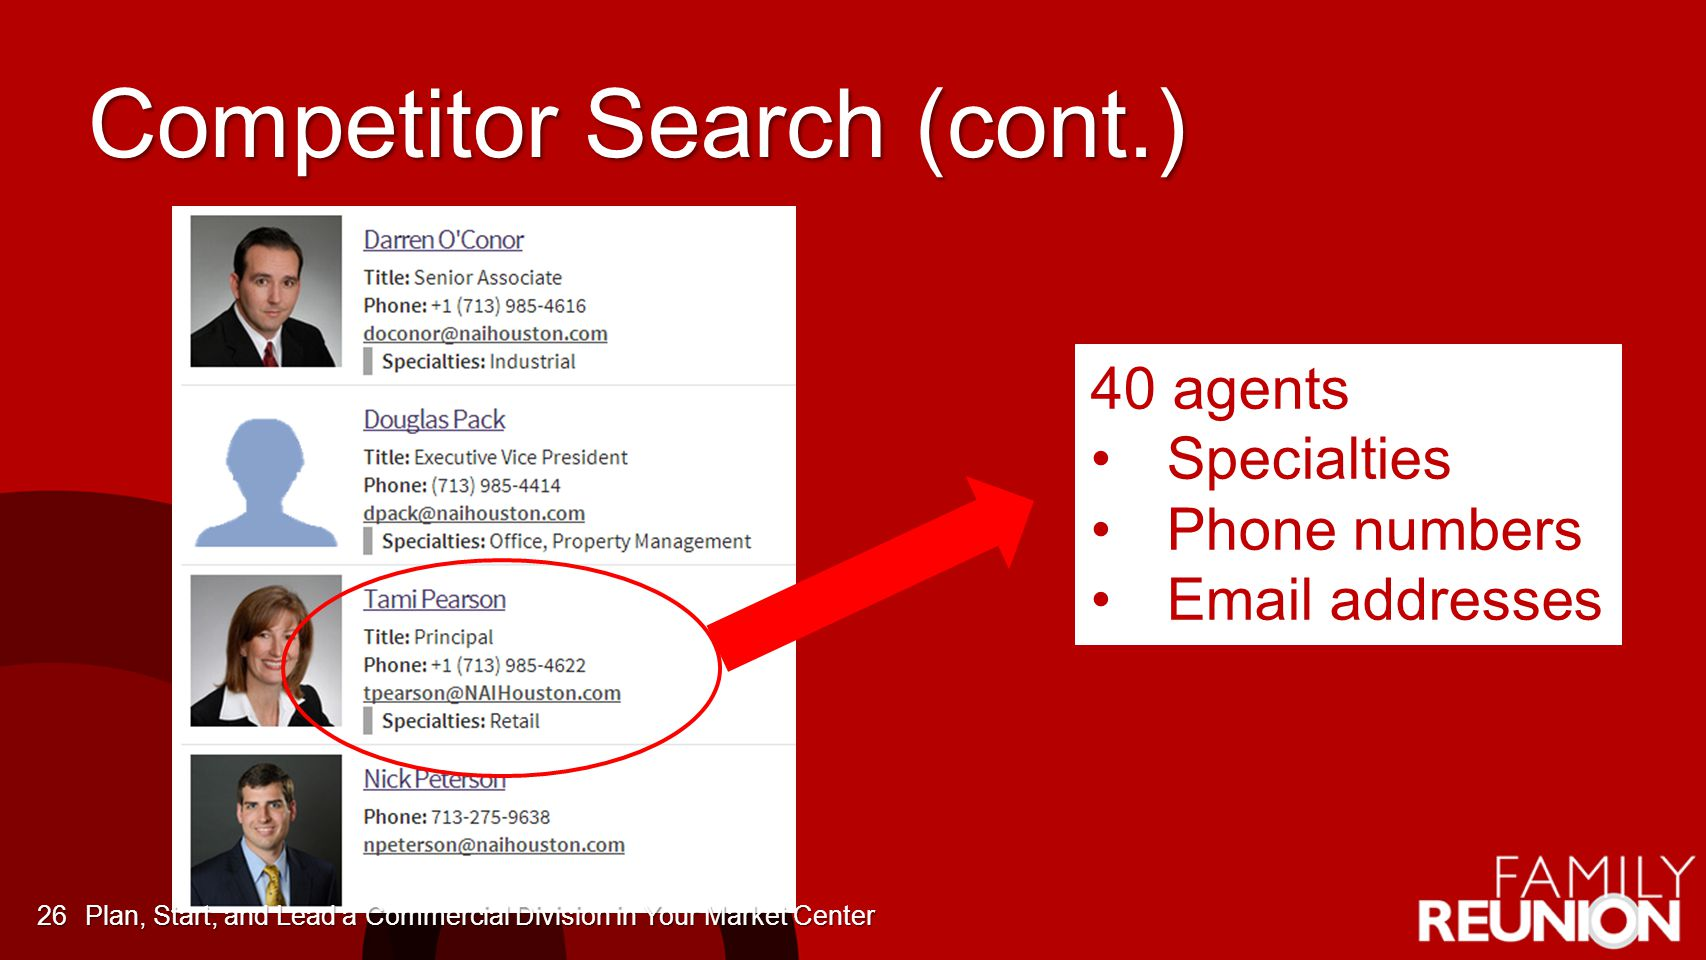 Competitor Search (cont.) 40 agents Specialties Phone numbers Email addresses Plan, Start, and Lead a Commercial Division in Your Market Center26